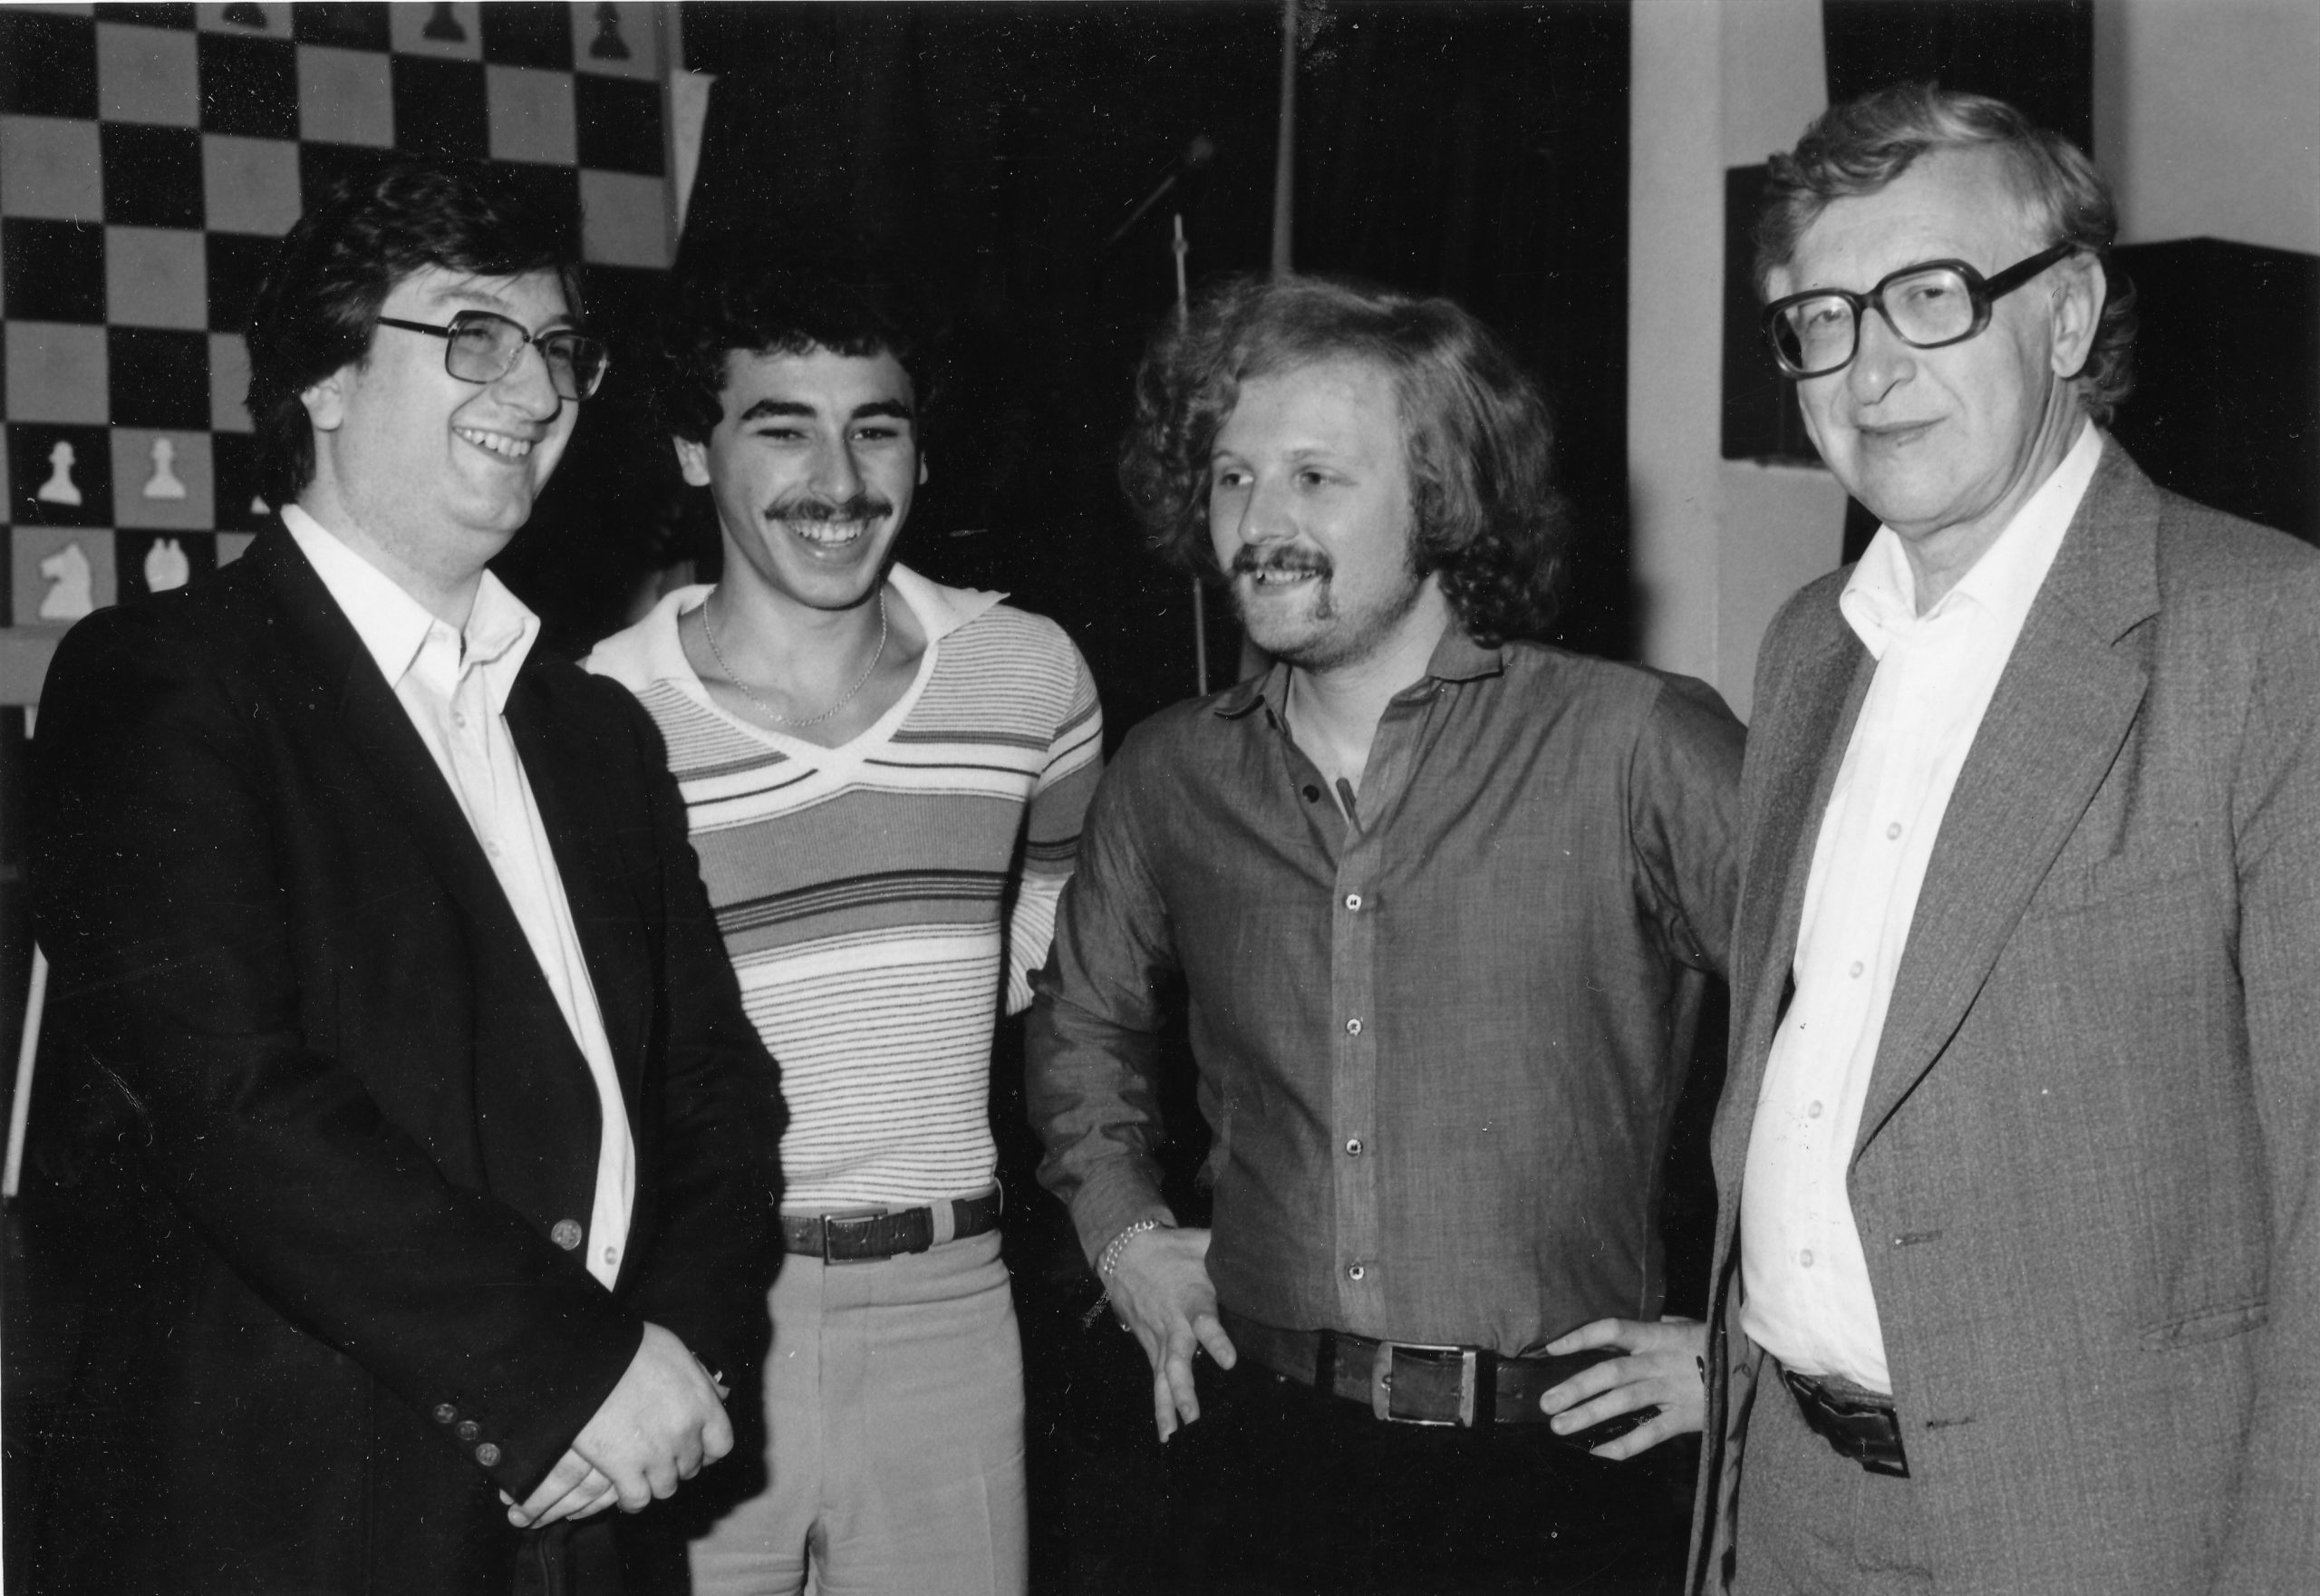 Tony at a Lloyds Bank event with Ray Keene, Yasser Seirawan and Vassily Smyslov